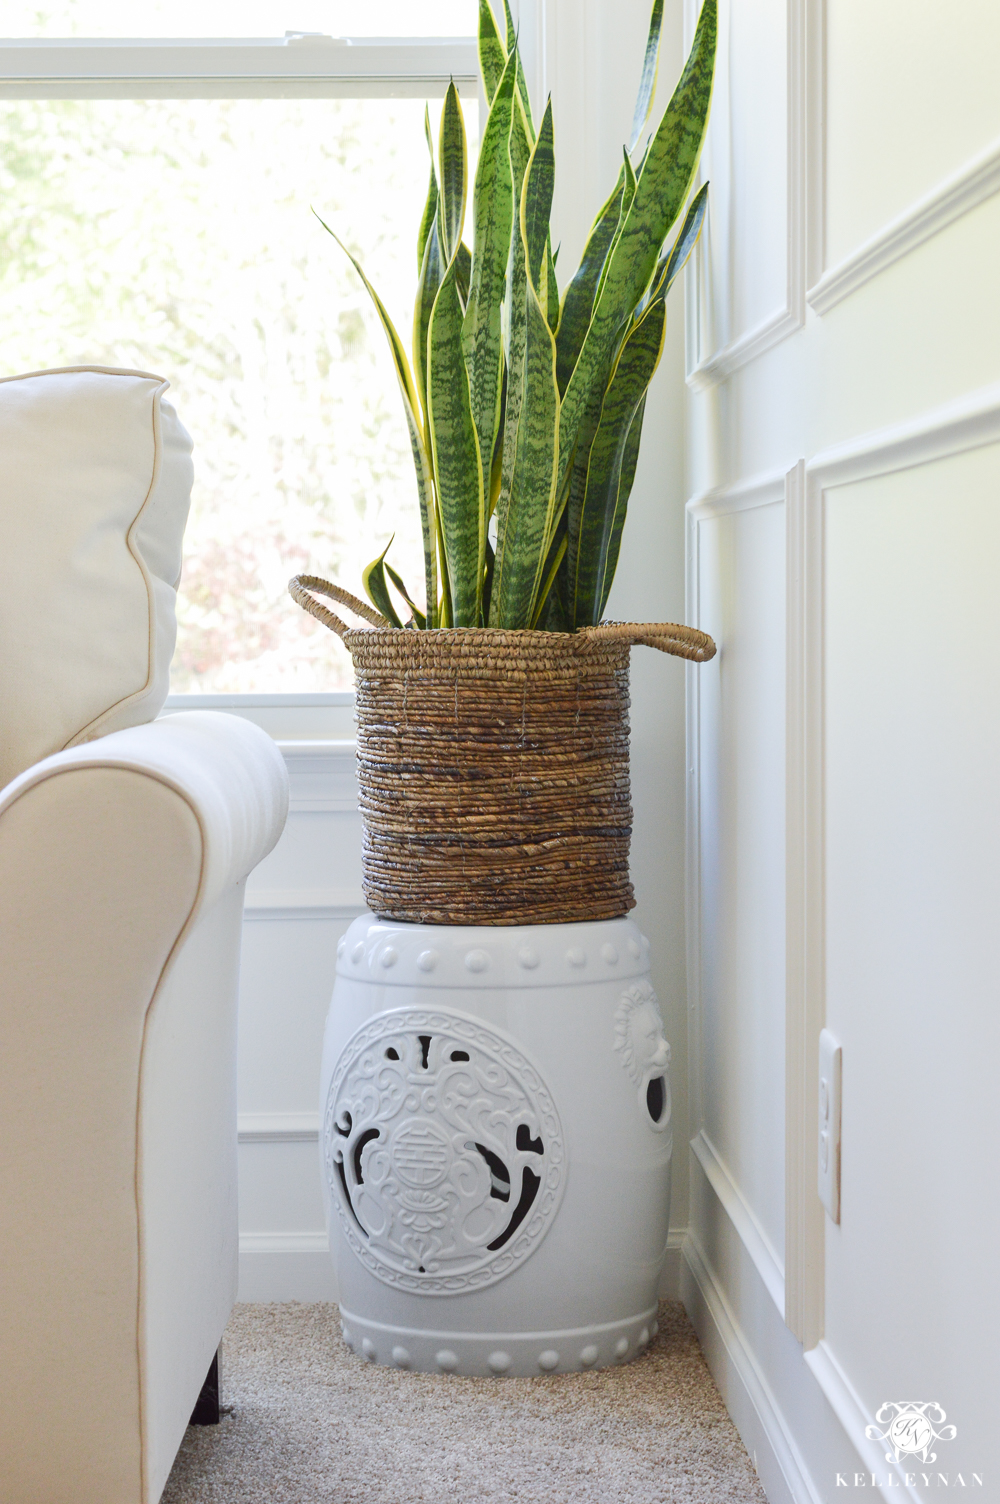 Style a snake plant in the corner of the room in a basket on top of a garden stool